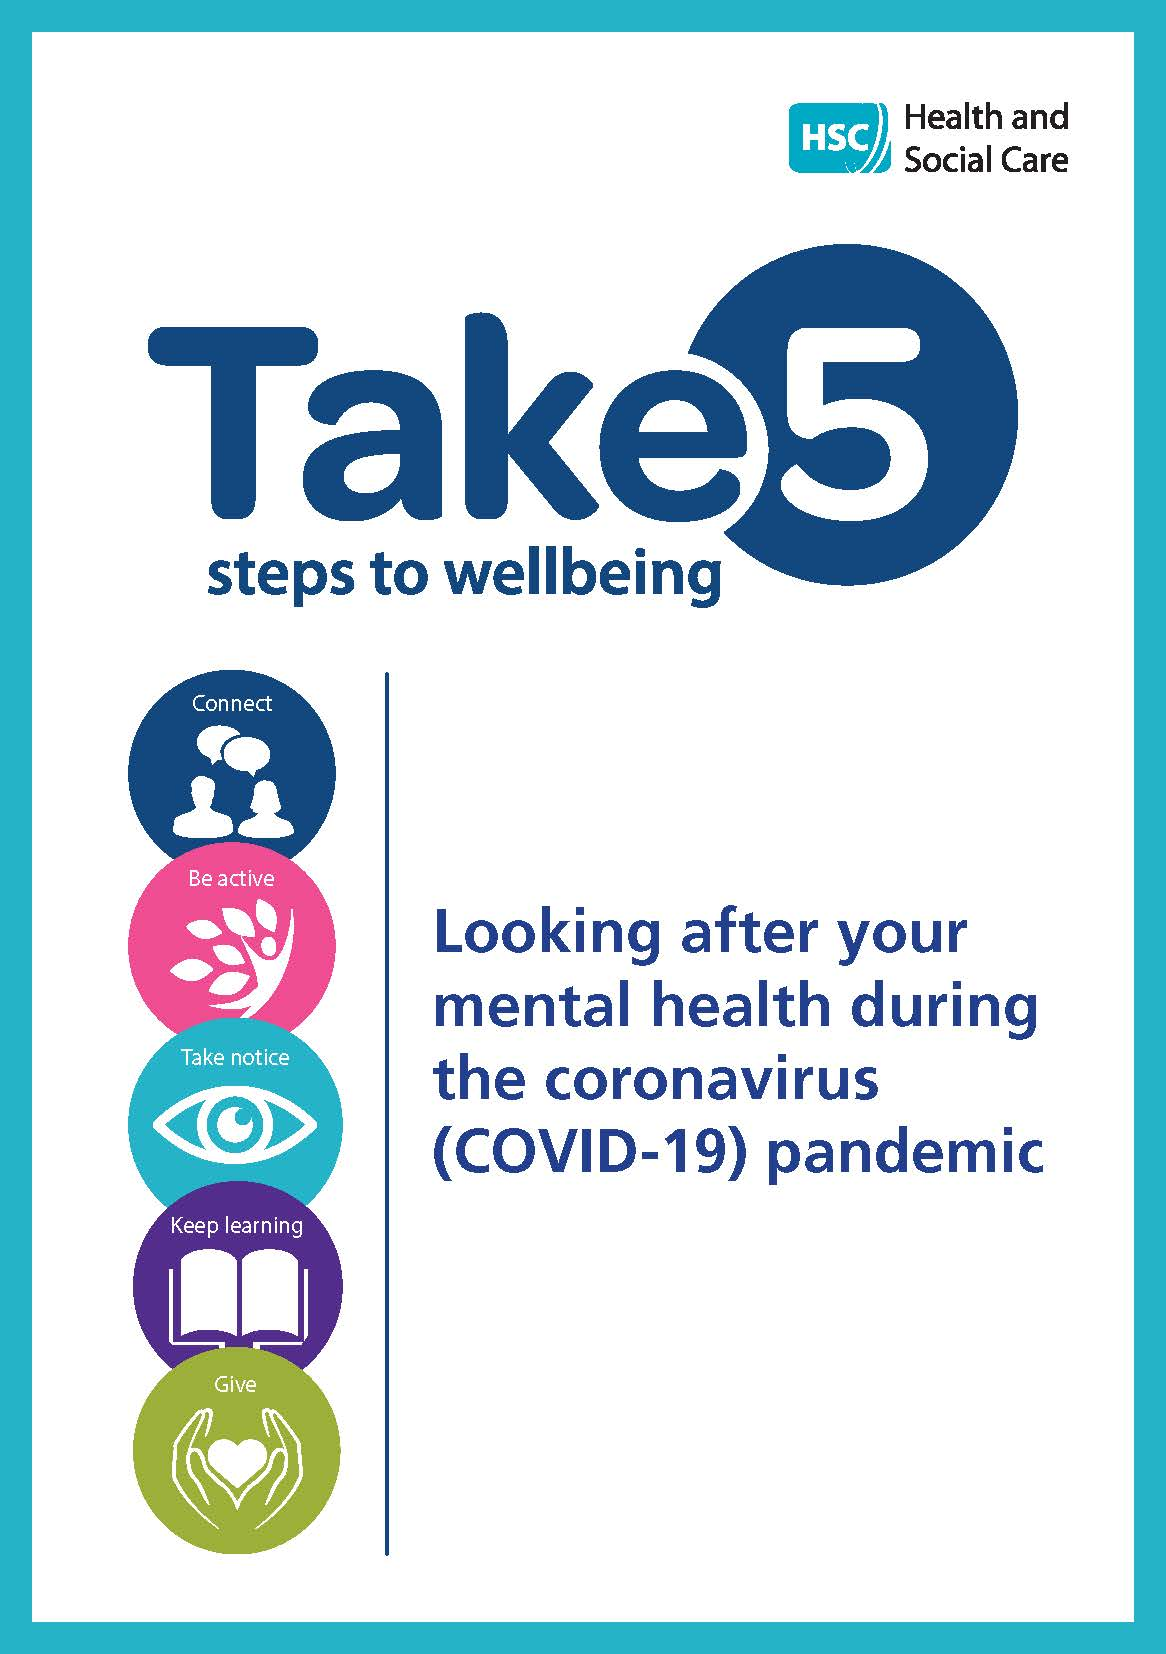 Cover of Take 5 coronavirus leaflet